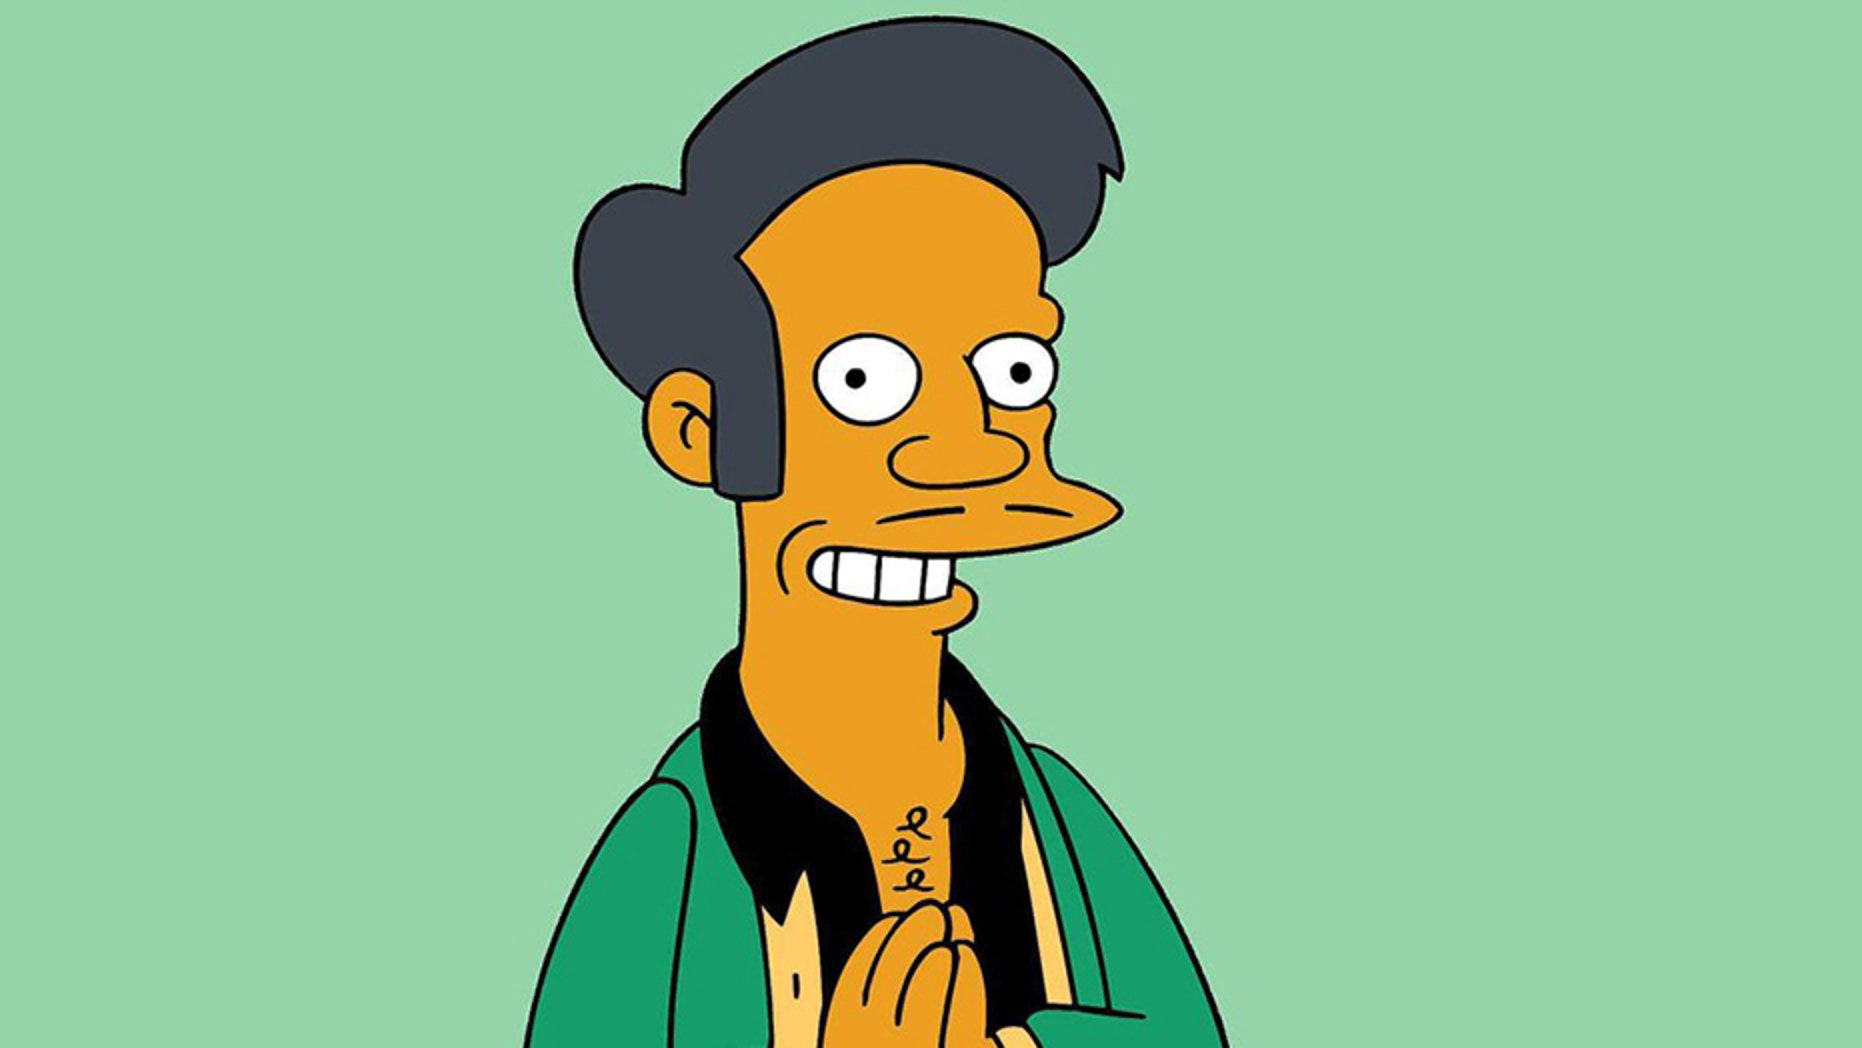 """The Simpsons"" addressed the controversy surrounding its character Apu in Sunday night's episode."